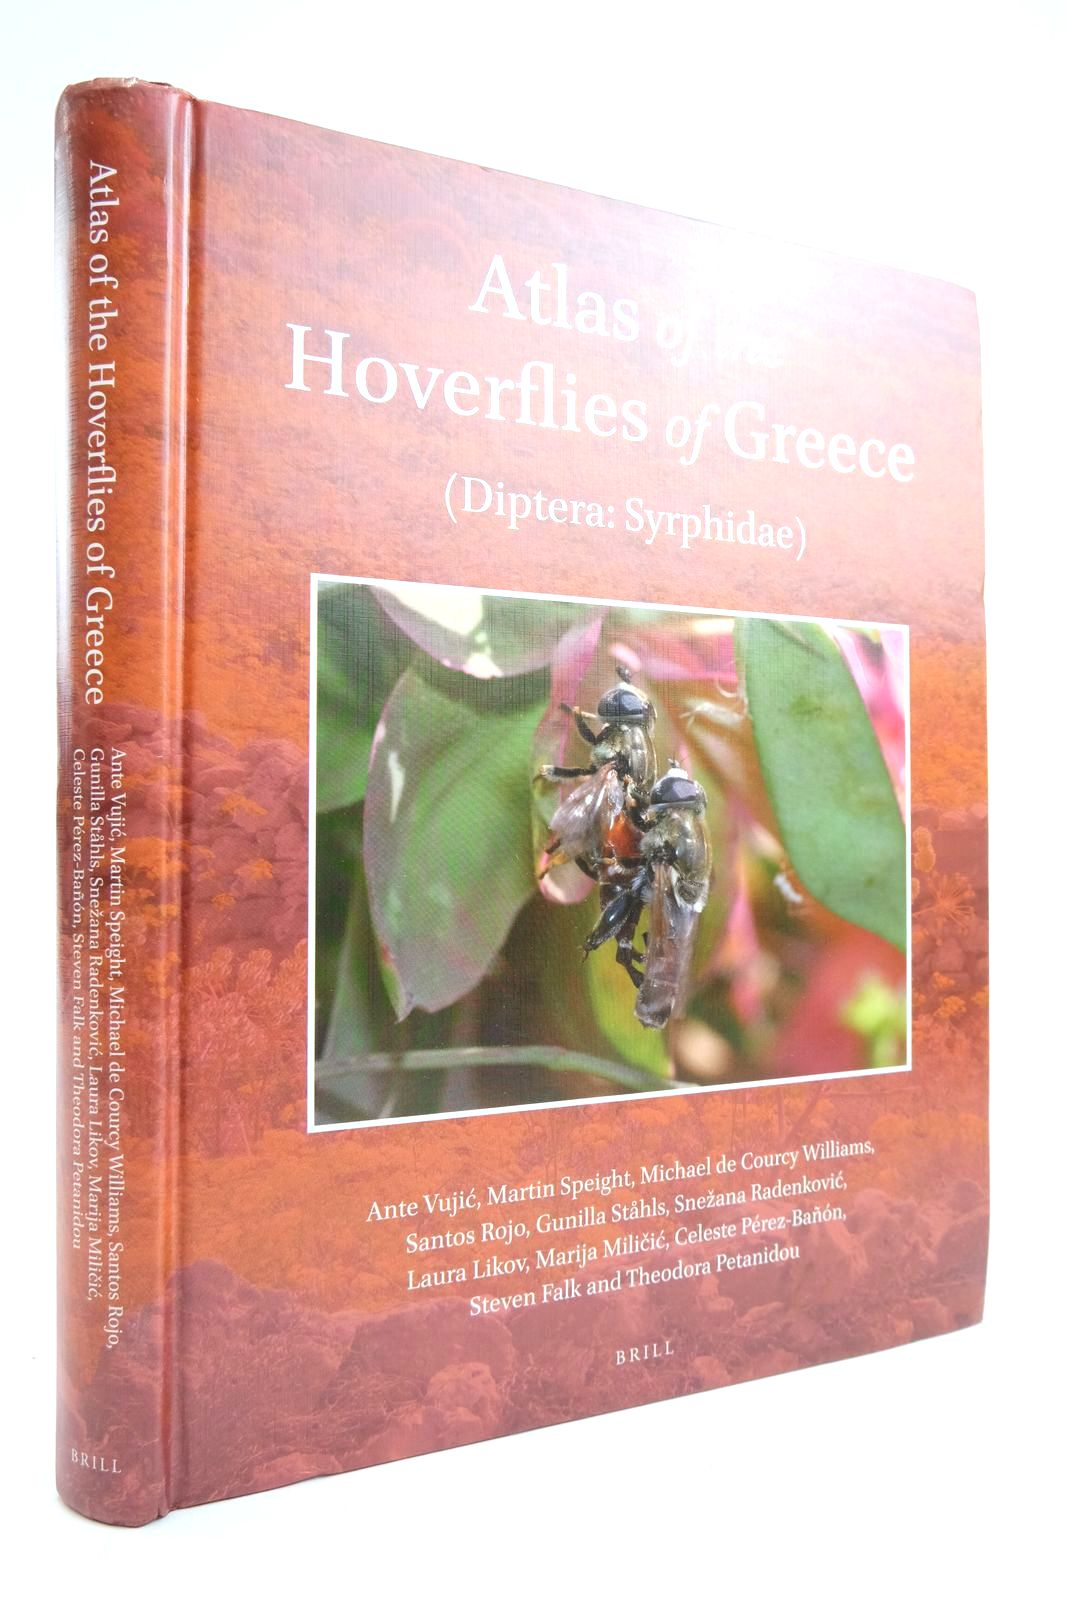 Photo of ATLAS OF THE HOVERFLIES OF GREECE (DIPTERA: SYRPHIDAE)- Stock Number: 2135371